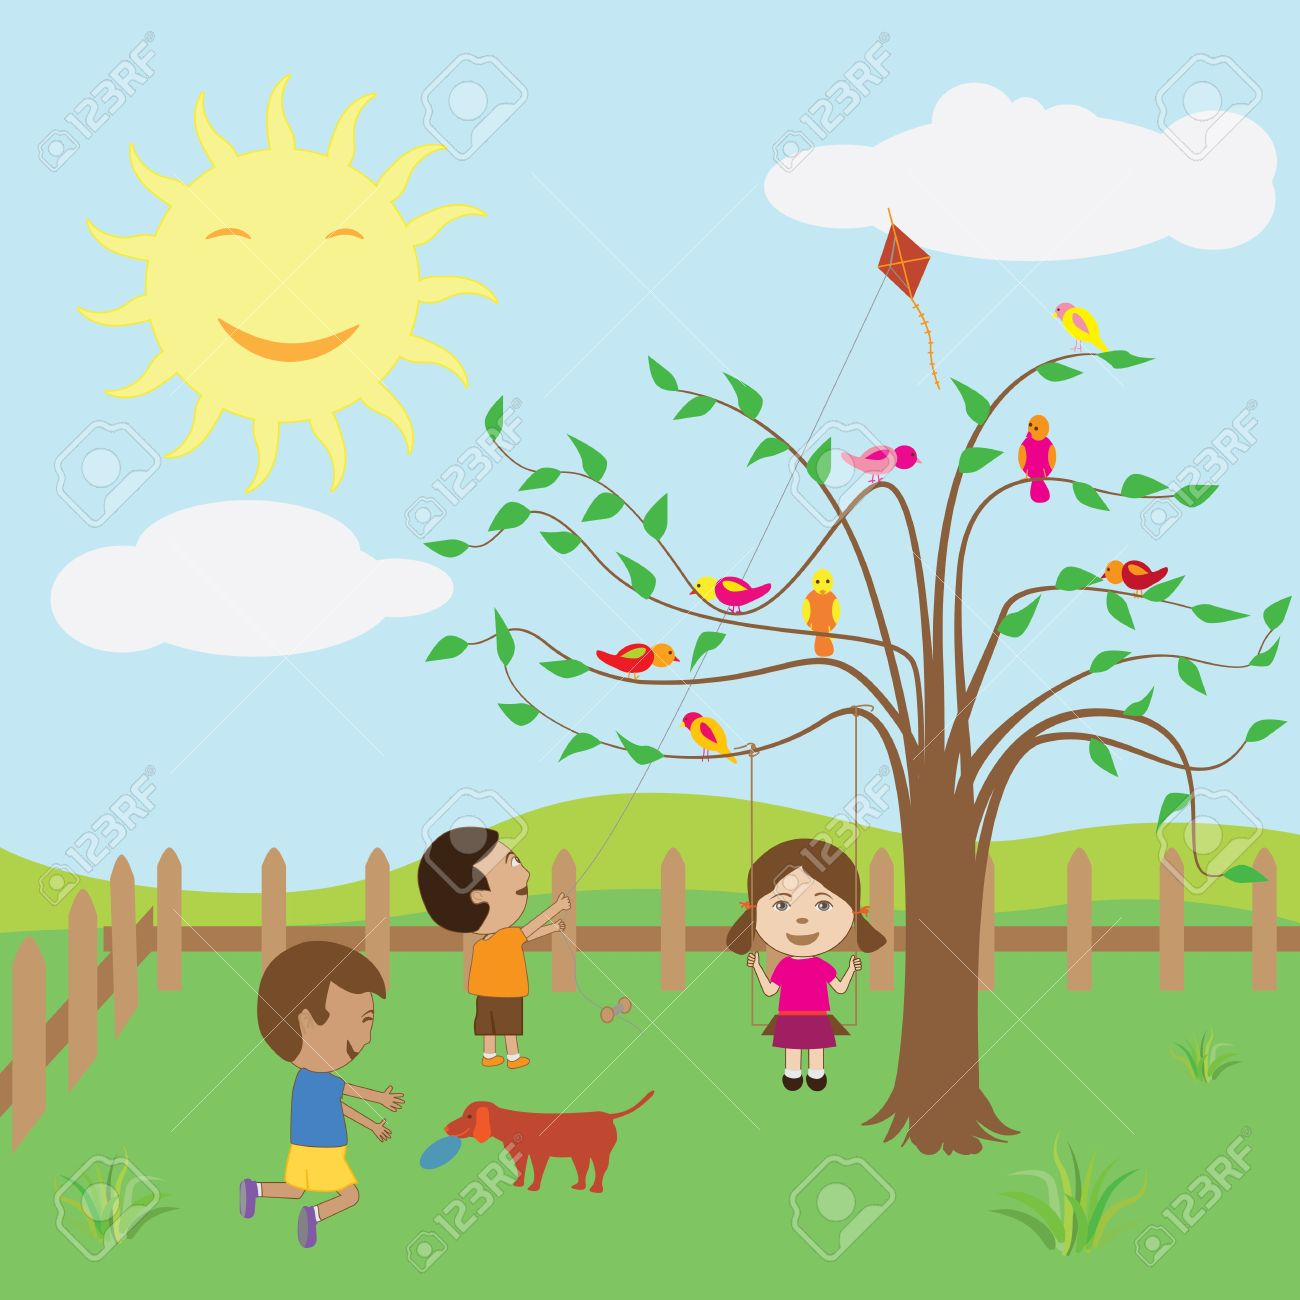 Bright sunny day clipart imgkid the image kid